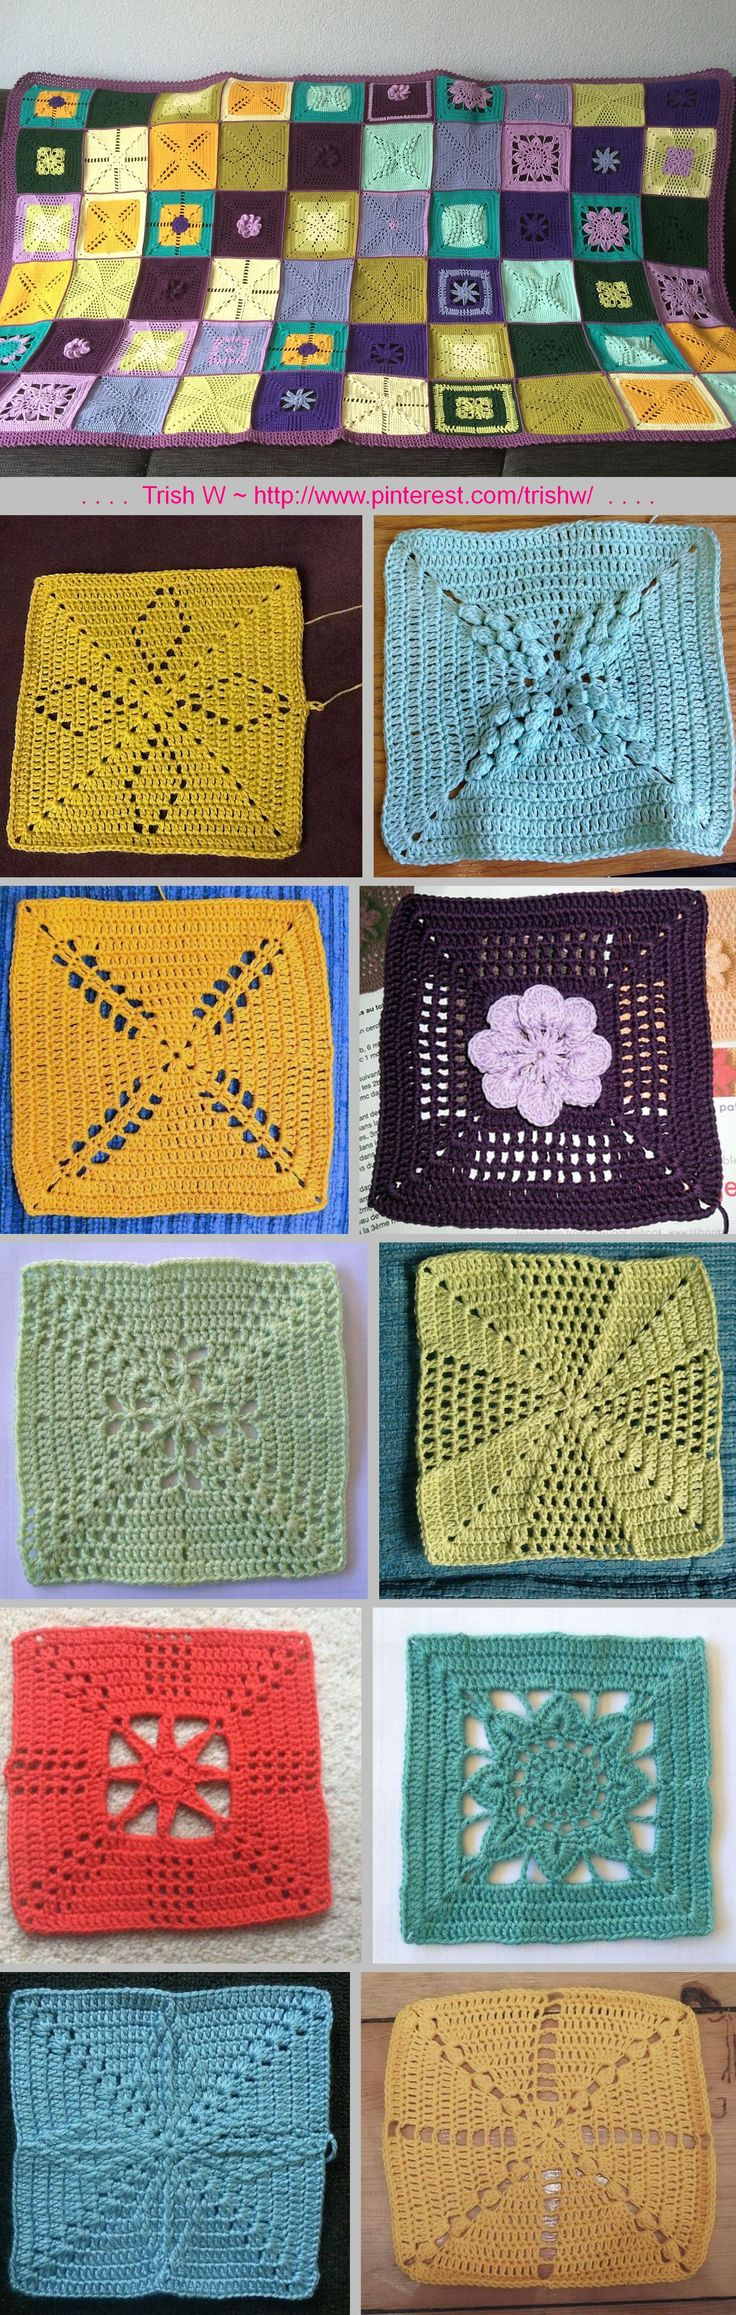 Scheepjes CAL 2014 ~ 10 different squares, free patterns by Marinke Slump. She also gives tips, two joining tutorials, & border pattern. All info is available as PDF downloads on her site page. RIP Wink